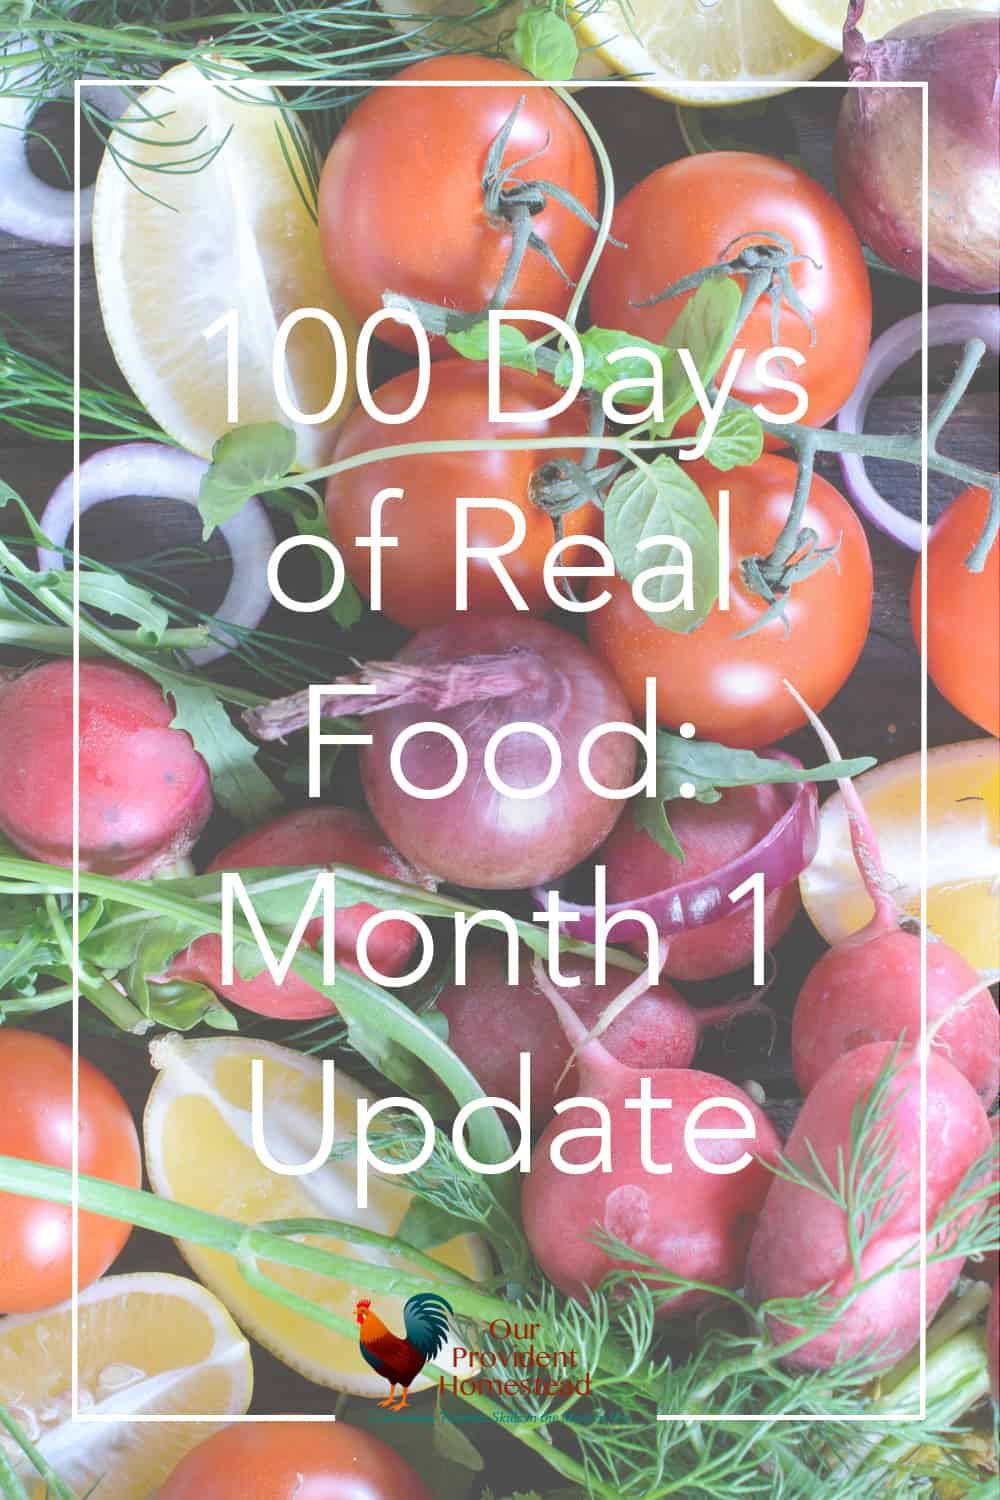 Are you on a real food journey? Click here to see how my first month went while participating in the 100 days of real food challenge. #100daysofrealfood #realfood #realfooddiet #homesteading #healthy